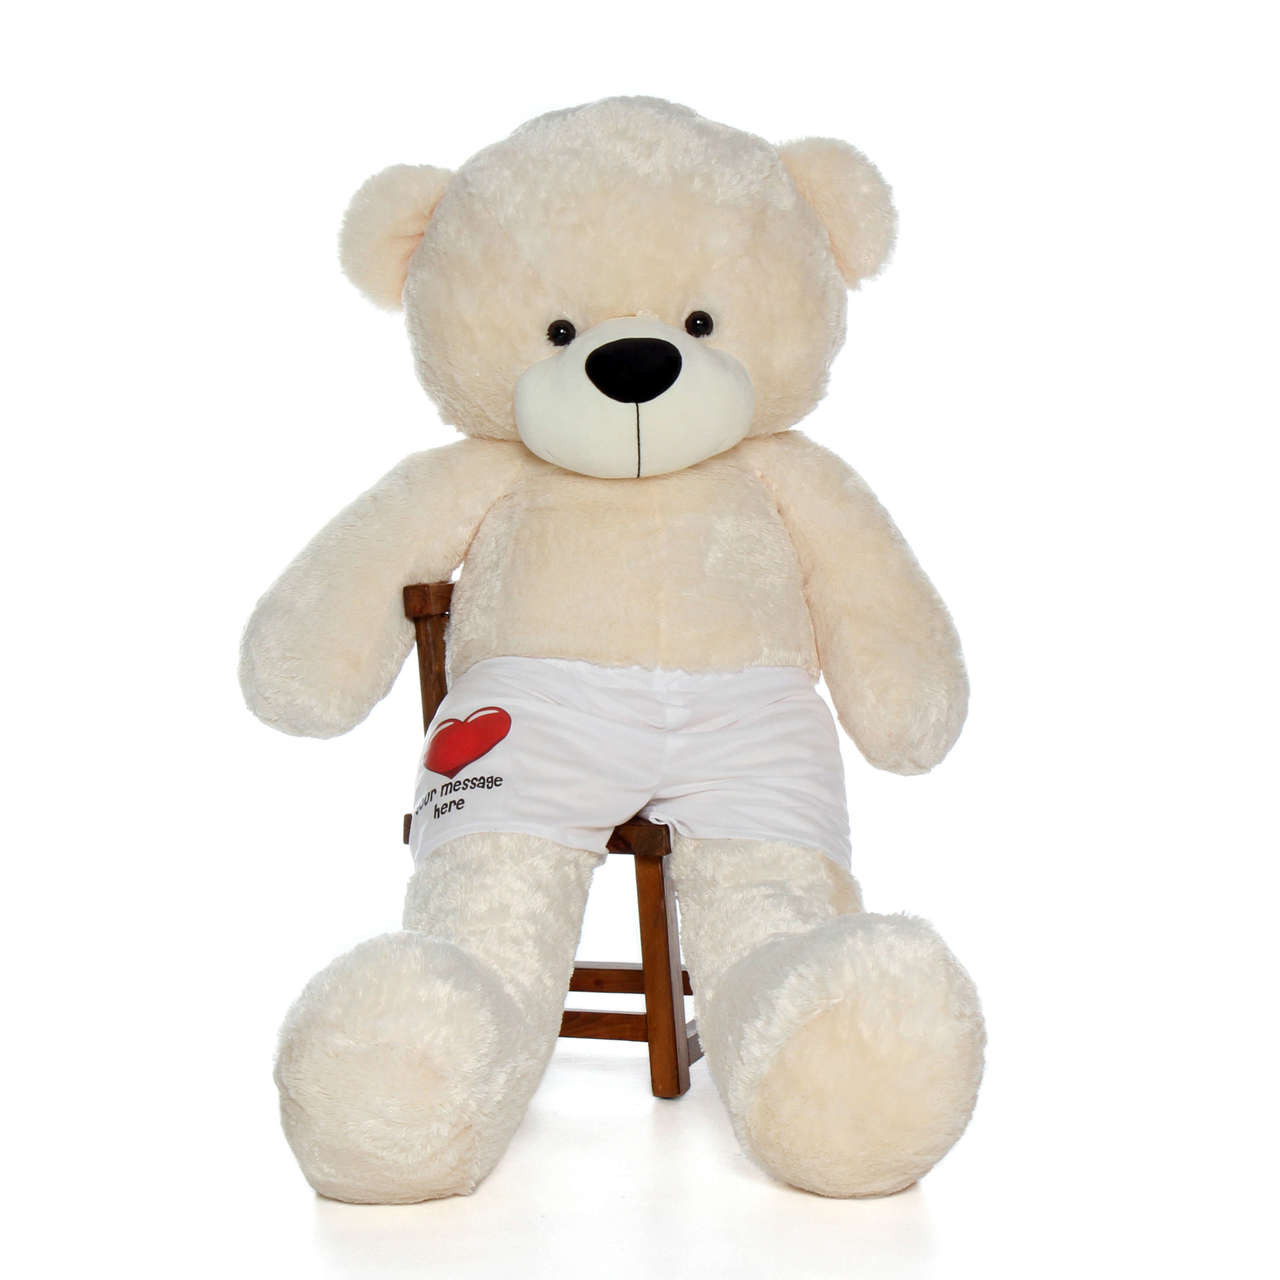 6ft Giant Teddy Bear Cozy Cuddles Vanilla Cream in Red Heart Your Message Here Boxers